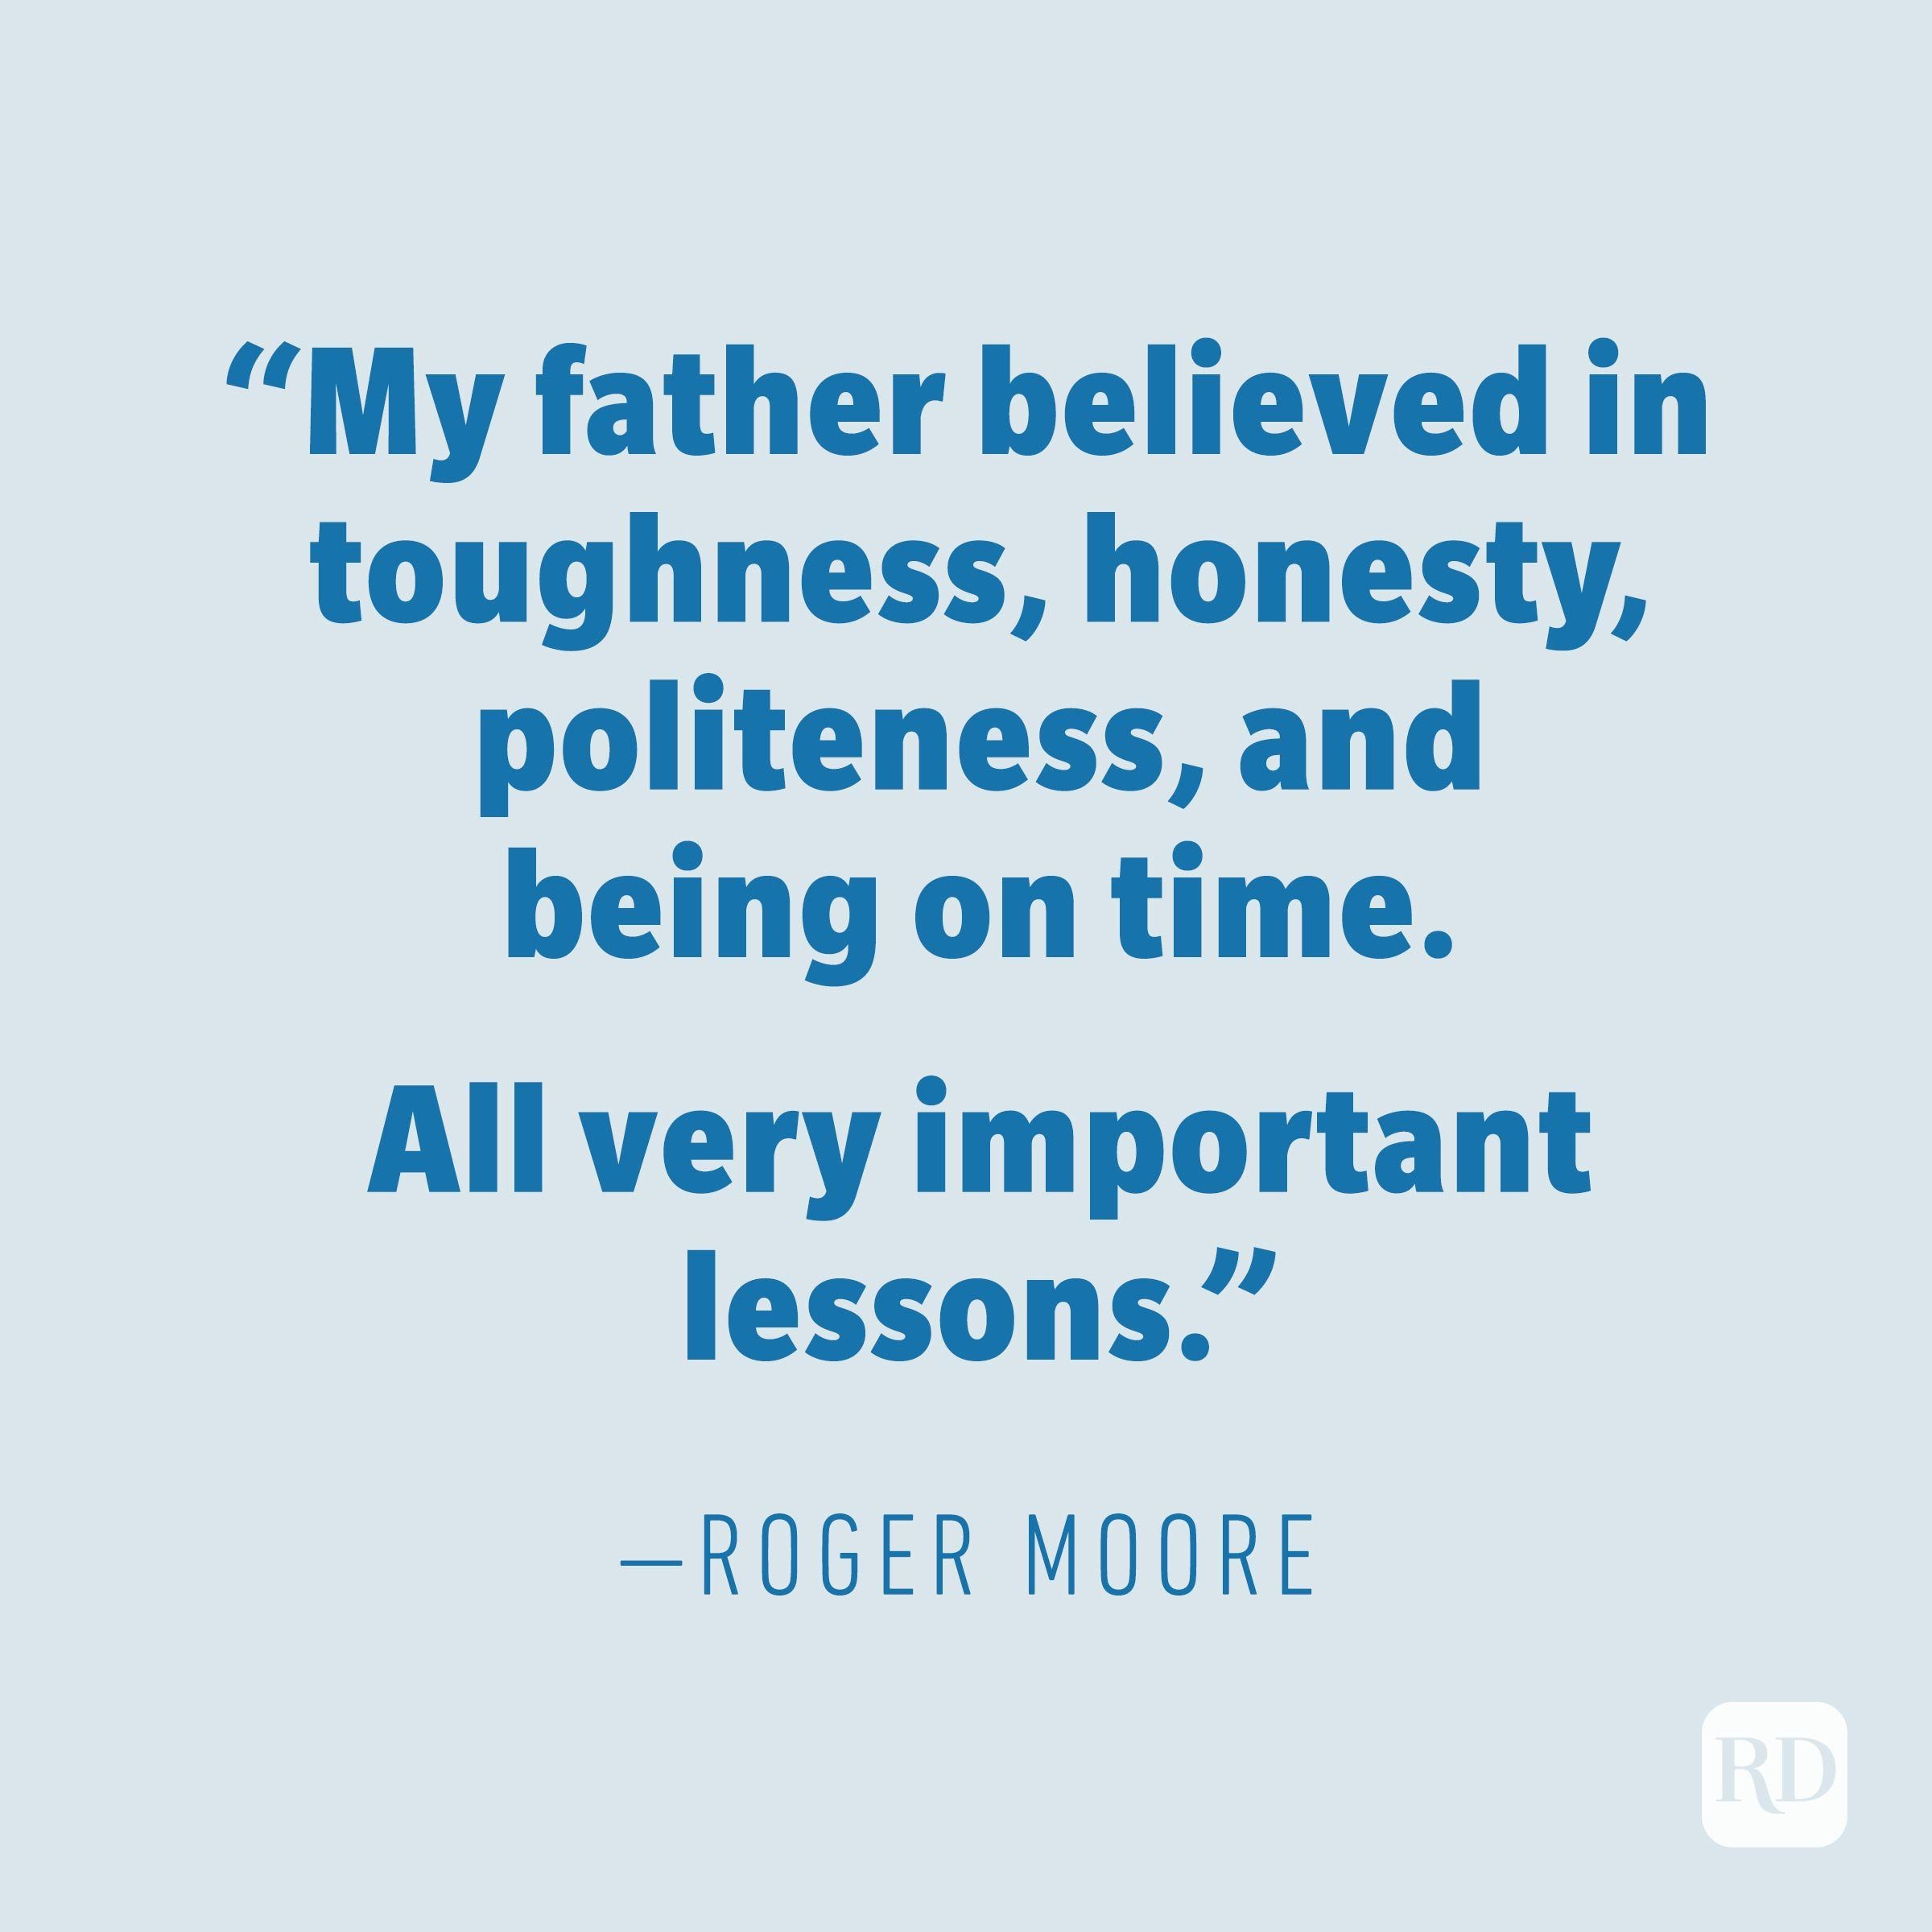 Roger Moore quote